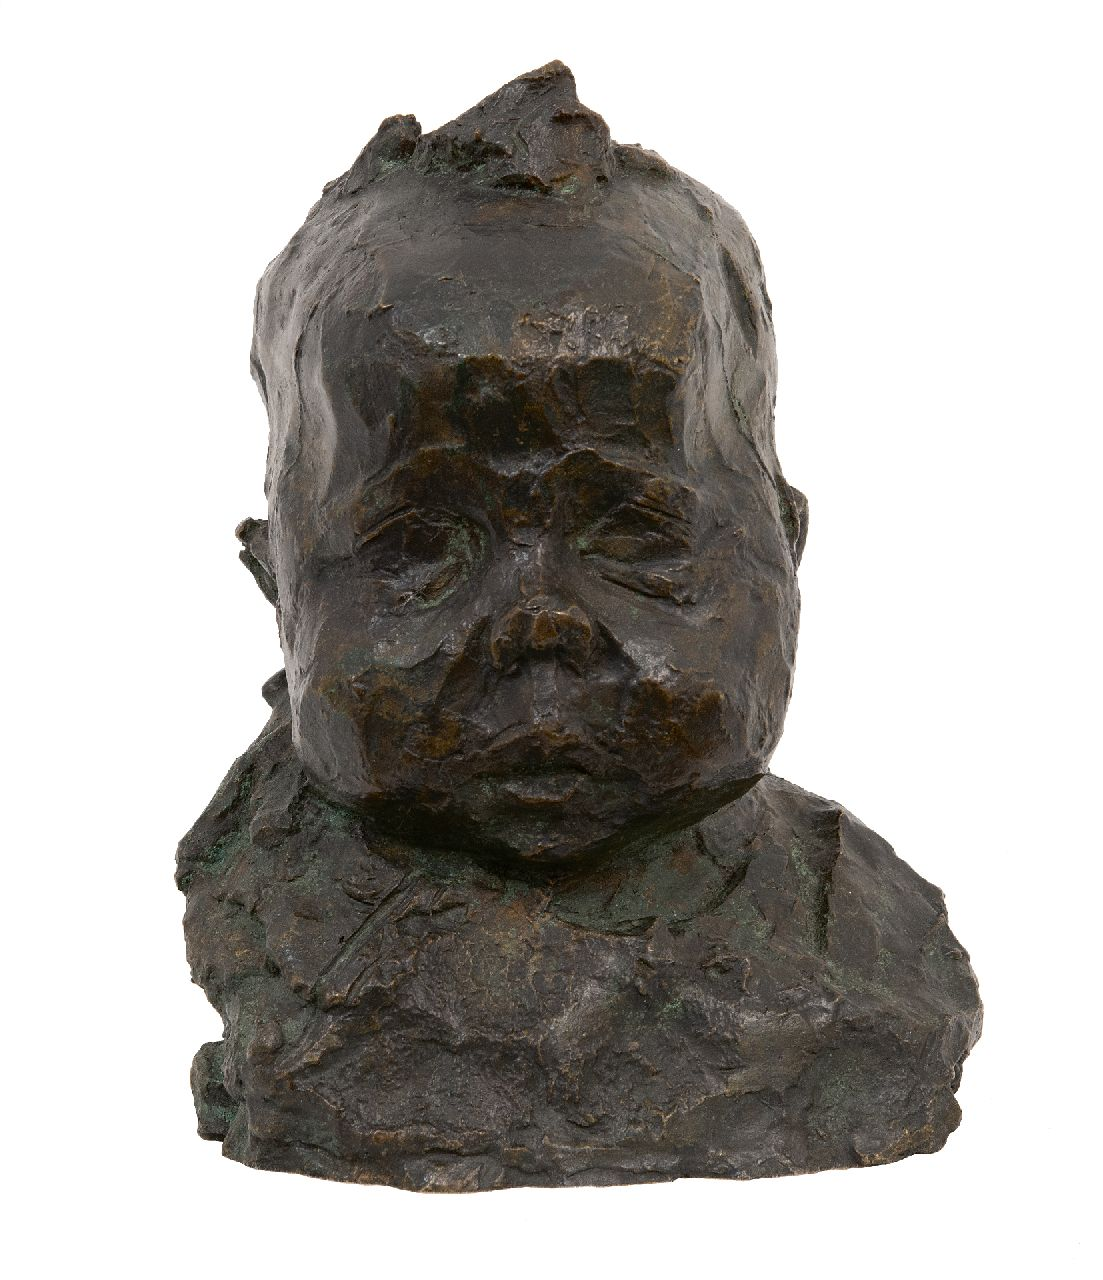 Zijl L.  | Lambertus Zijl | Sculptures and objects offered for sale | A baby's head, bronze 21.0 cm, signed on the back with initials and made in june '93